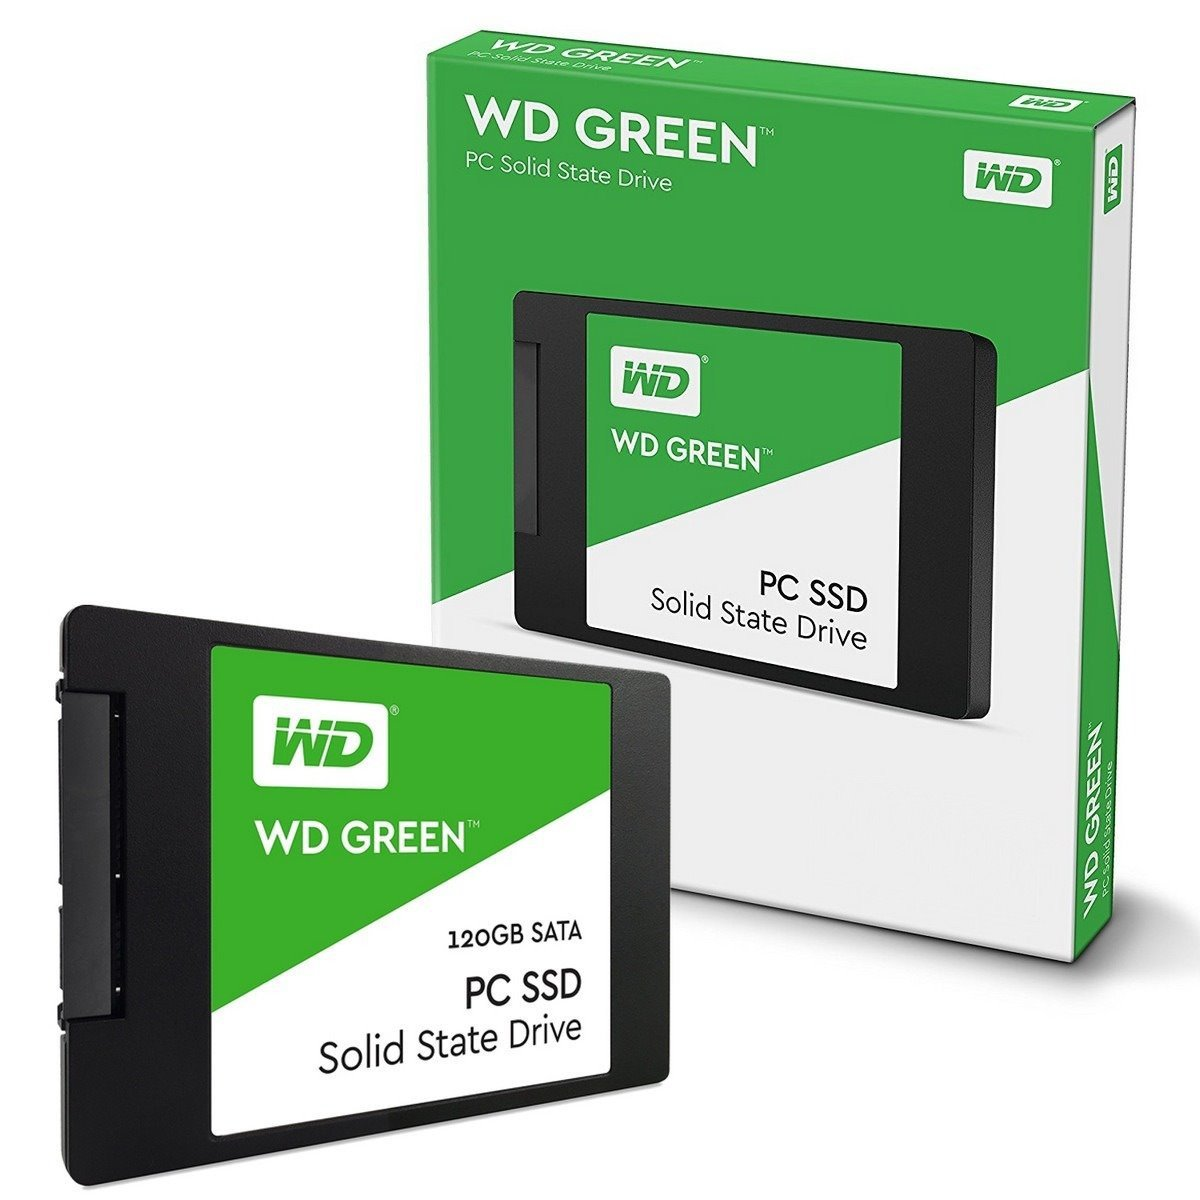 hd sata3 ssd 120gb 25 wd green westem digital 49799 2000 201034